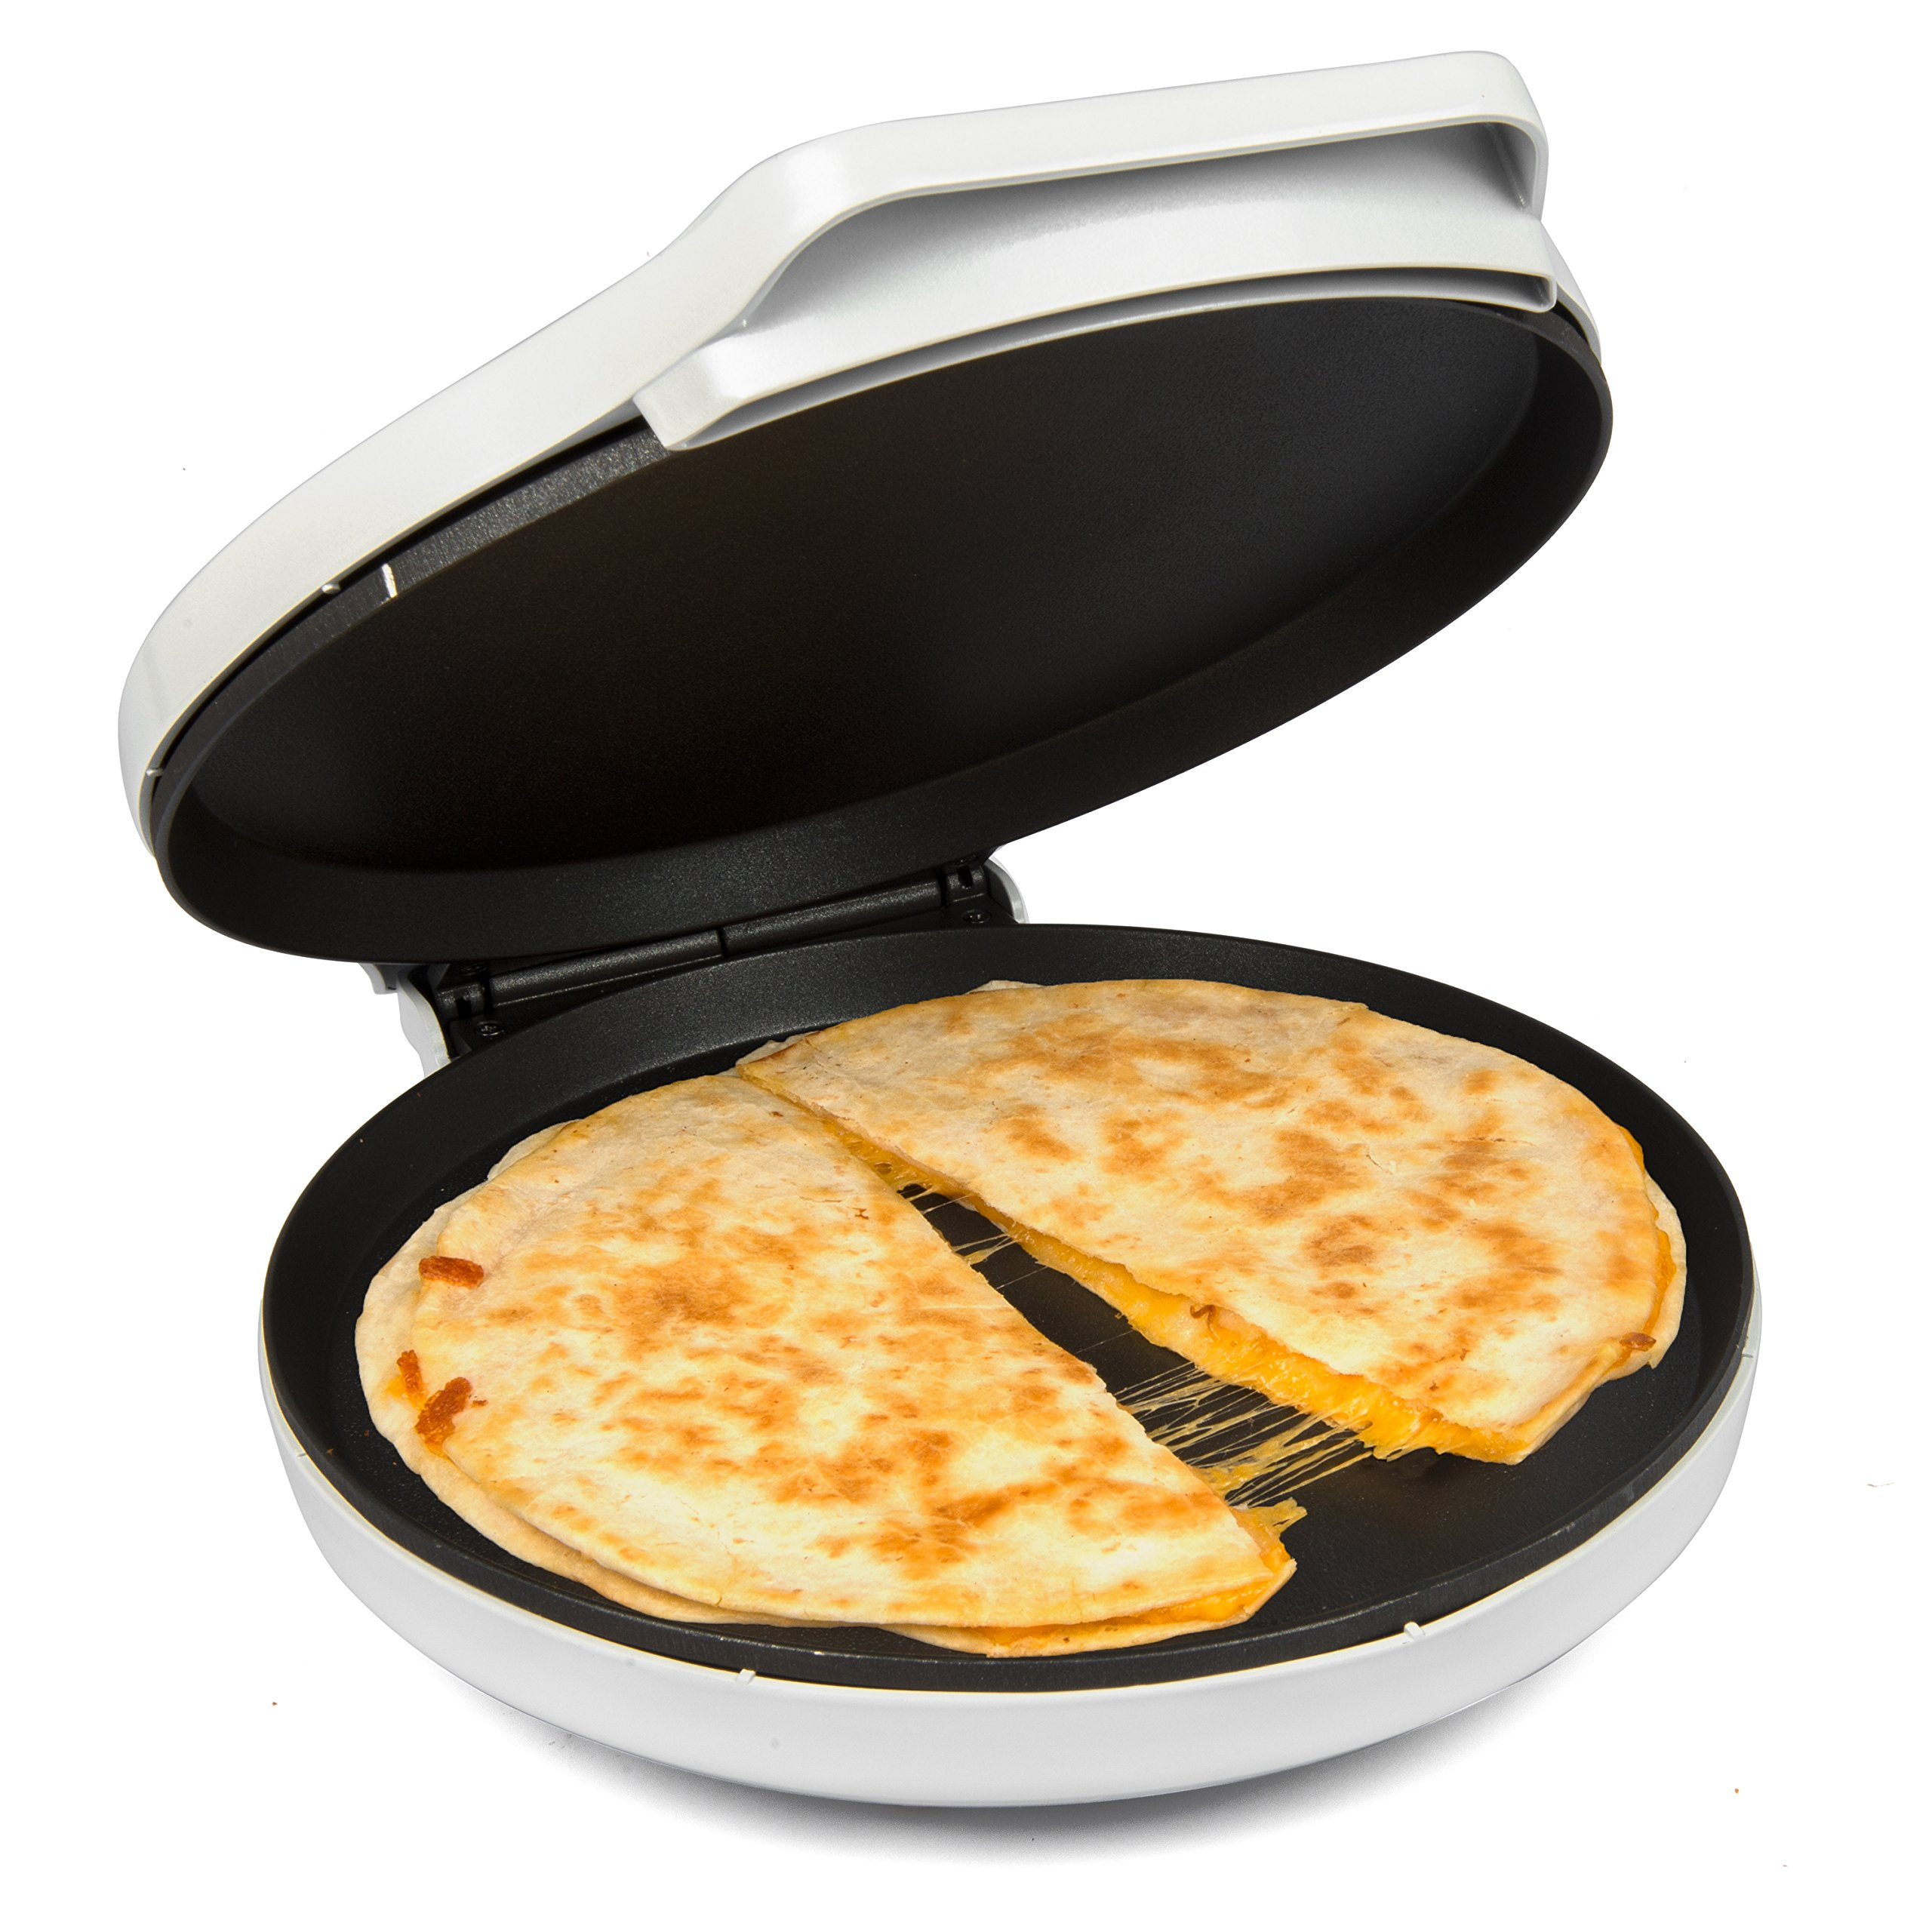 CucinaPro Pizza Maker and Everyday Baker - Electric Griddle Grill Pan Heats and Reheats in less than 2 minutes, White by CucinaPro (Image #2)